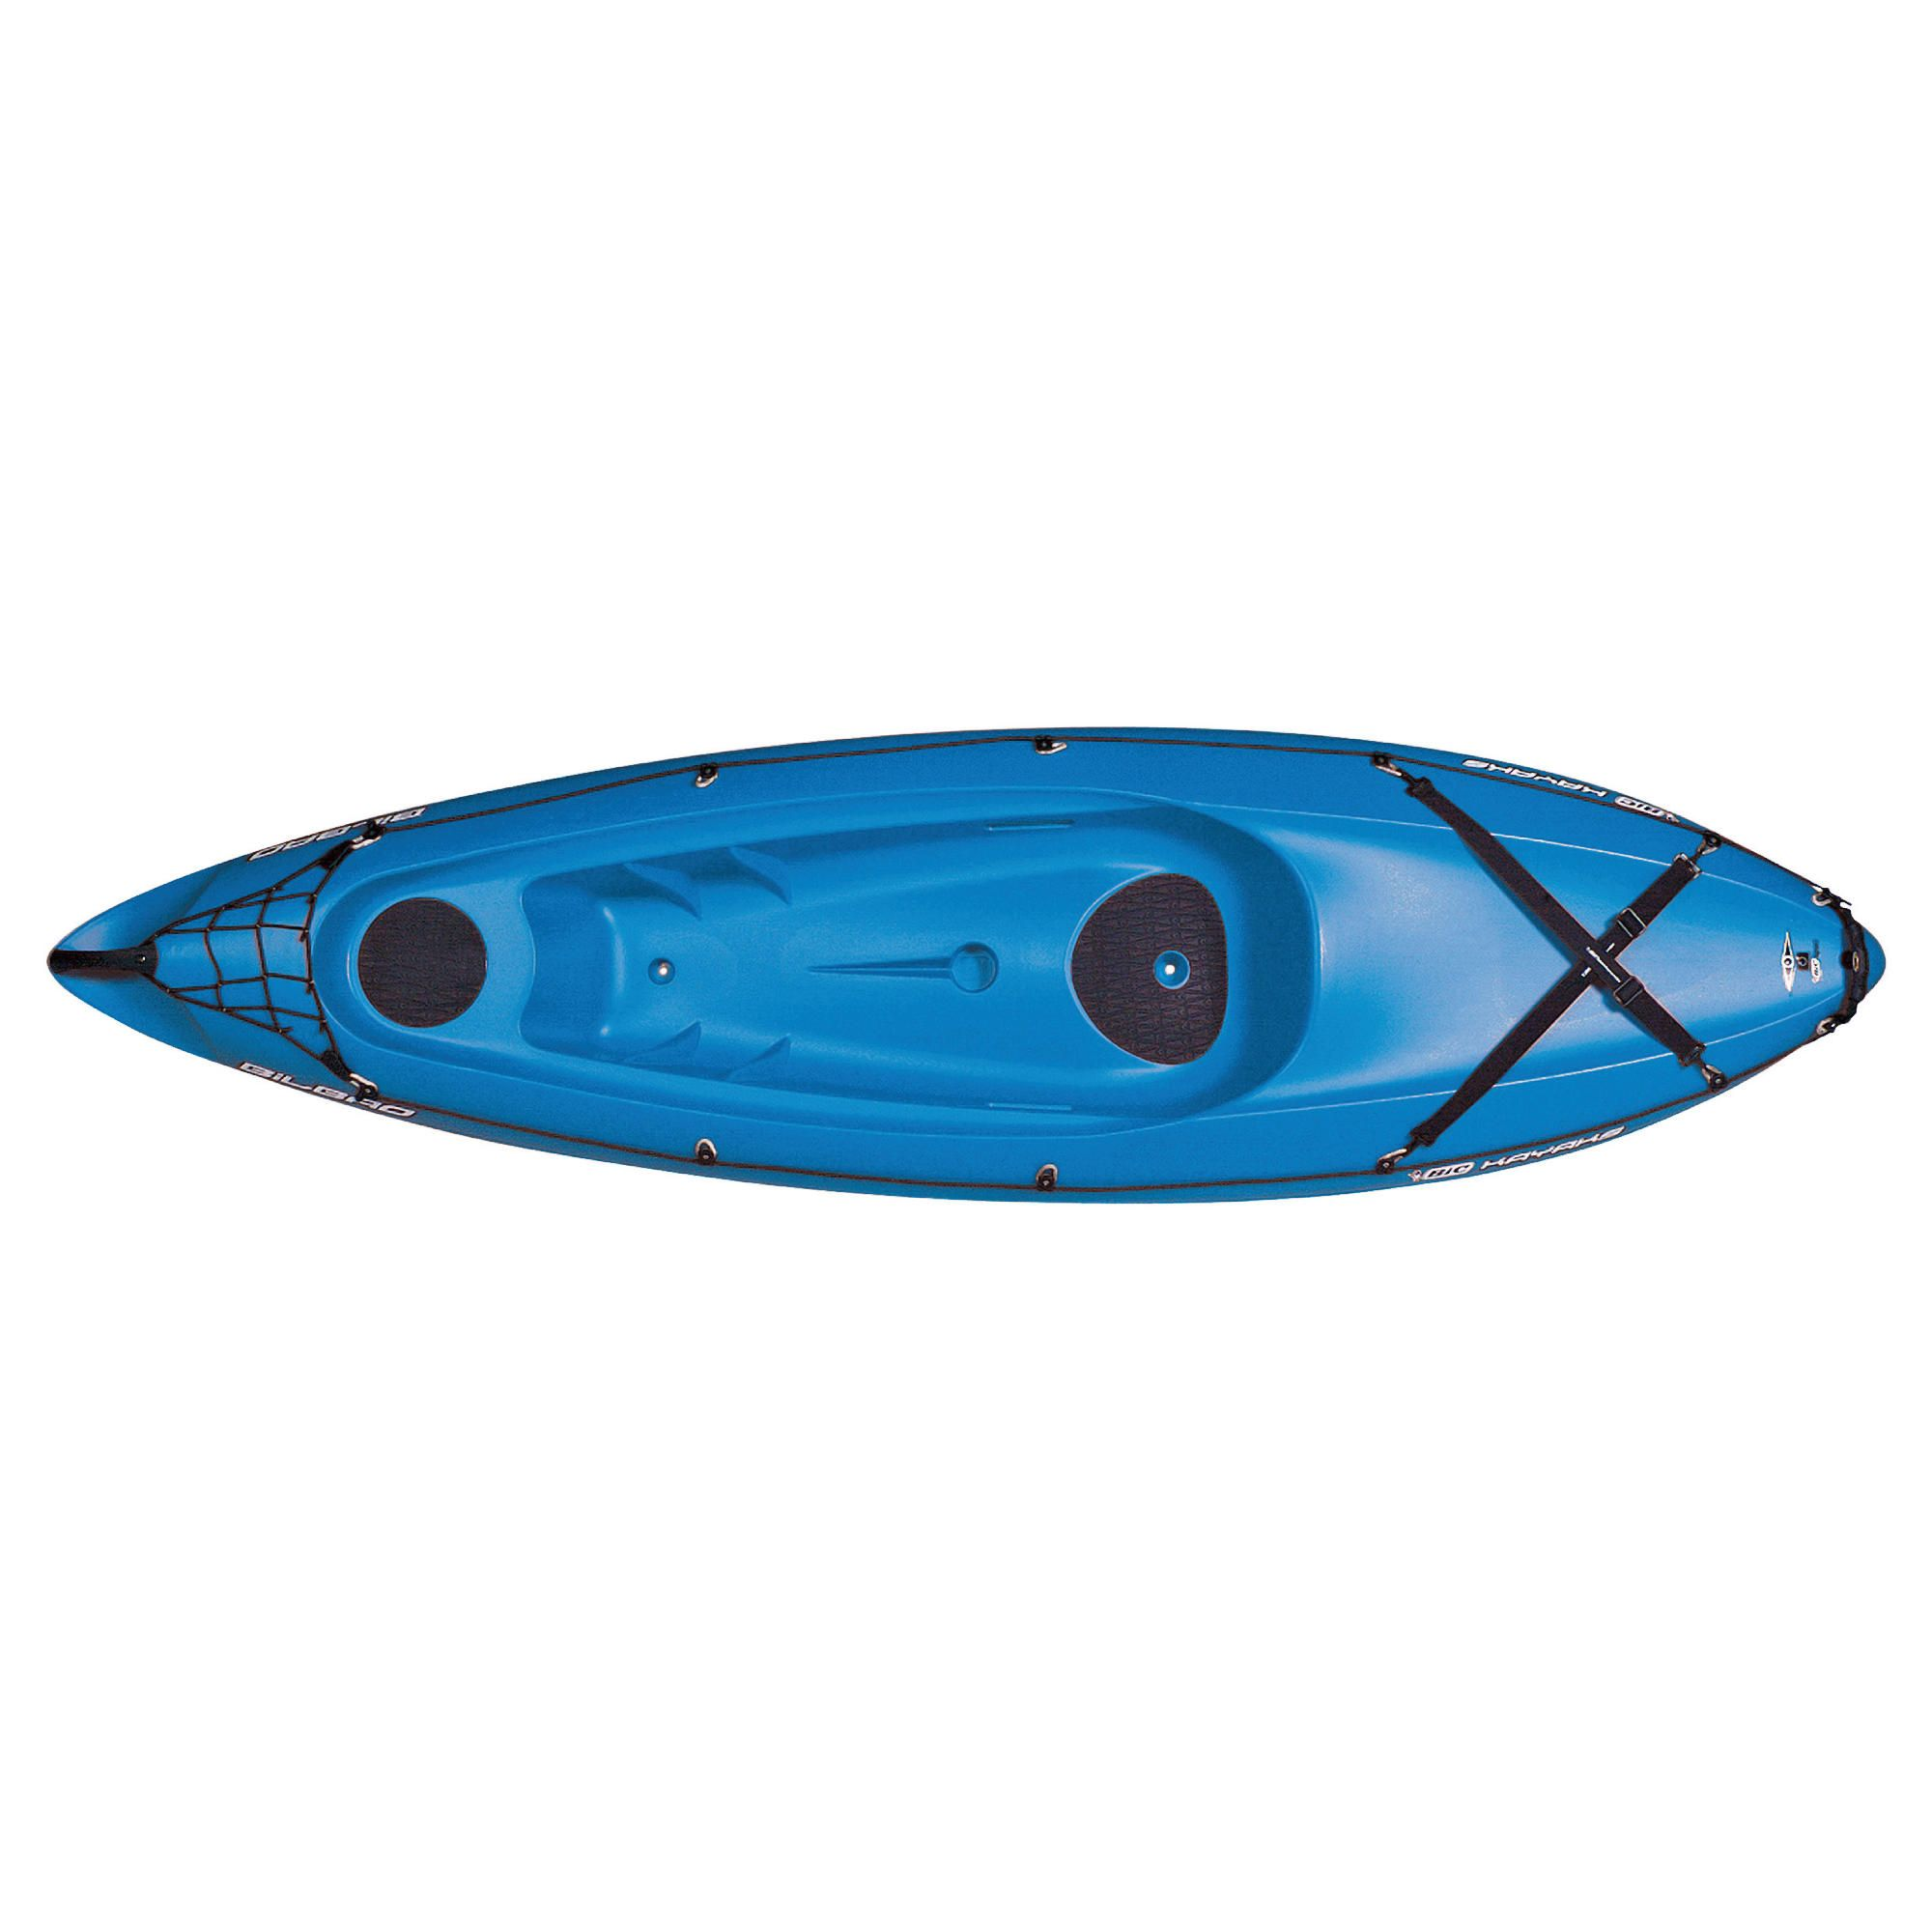 Bic Bilbao 1 Man Sit-On-Top Kayak Blue at Tesco Direct